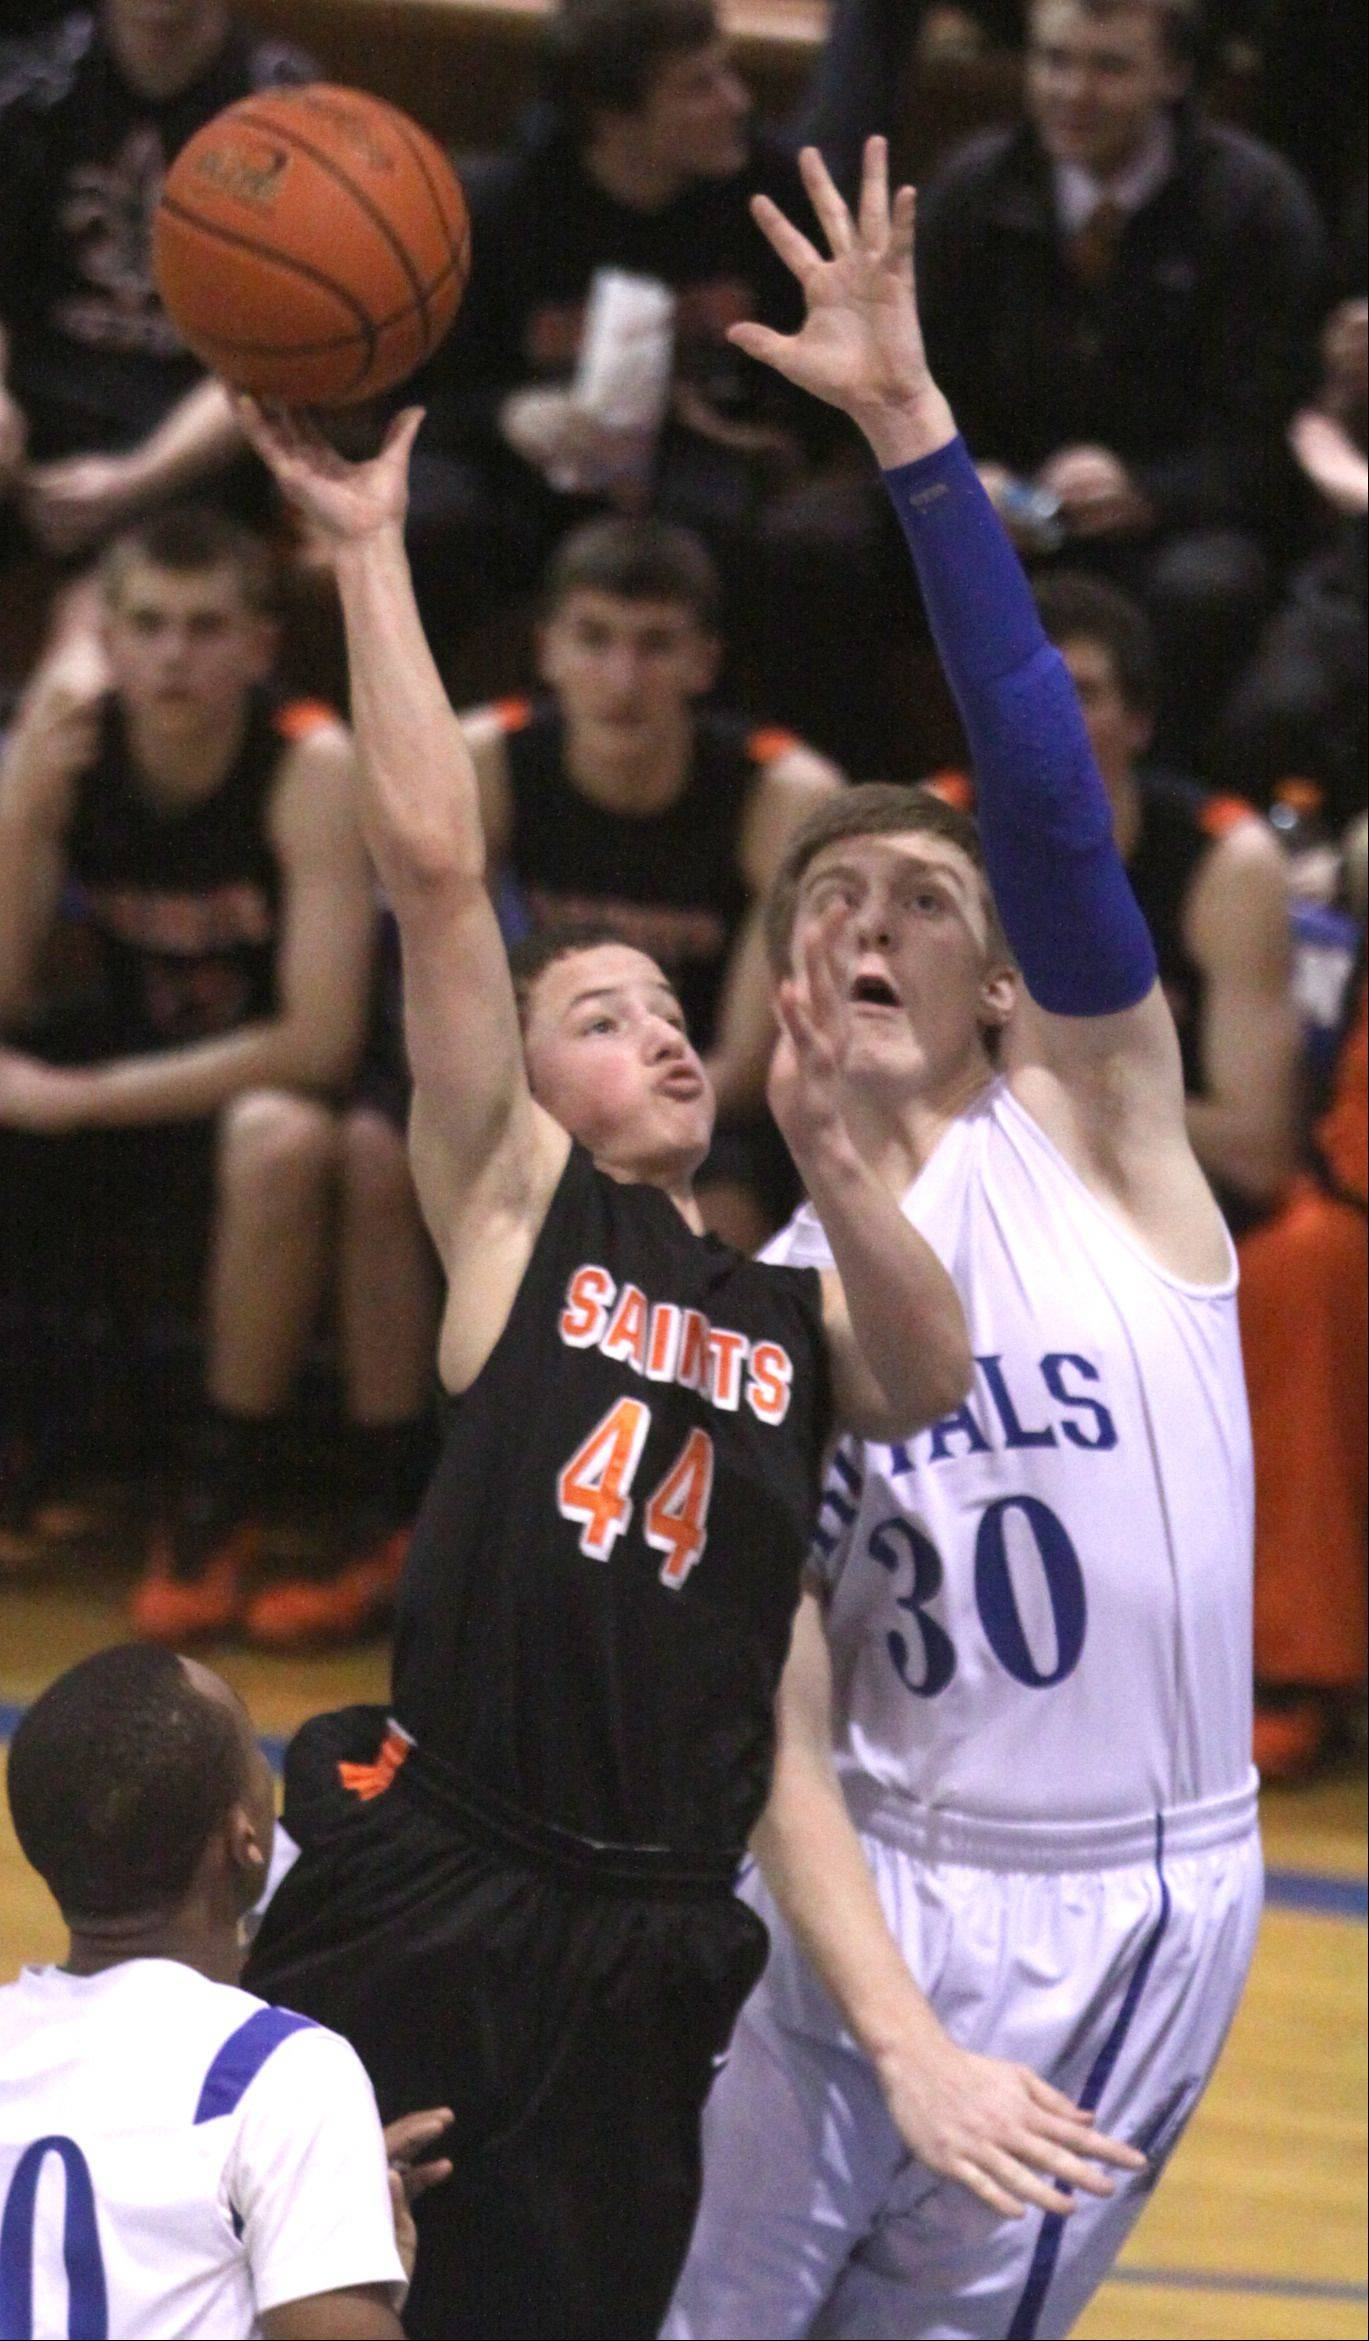 Larkin's Brayden Royse, right, tries to block St. Charles East's Cole Gentry during a varsity game in Elgin on Thursday night.